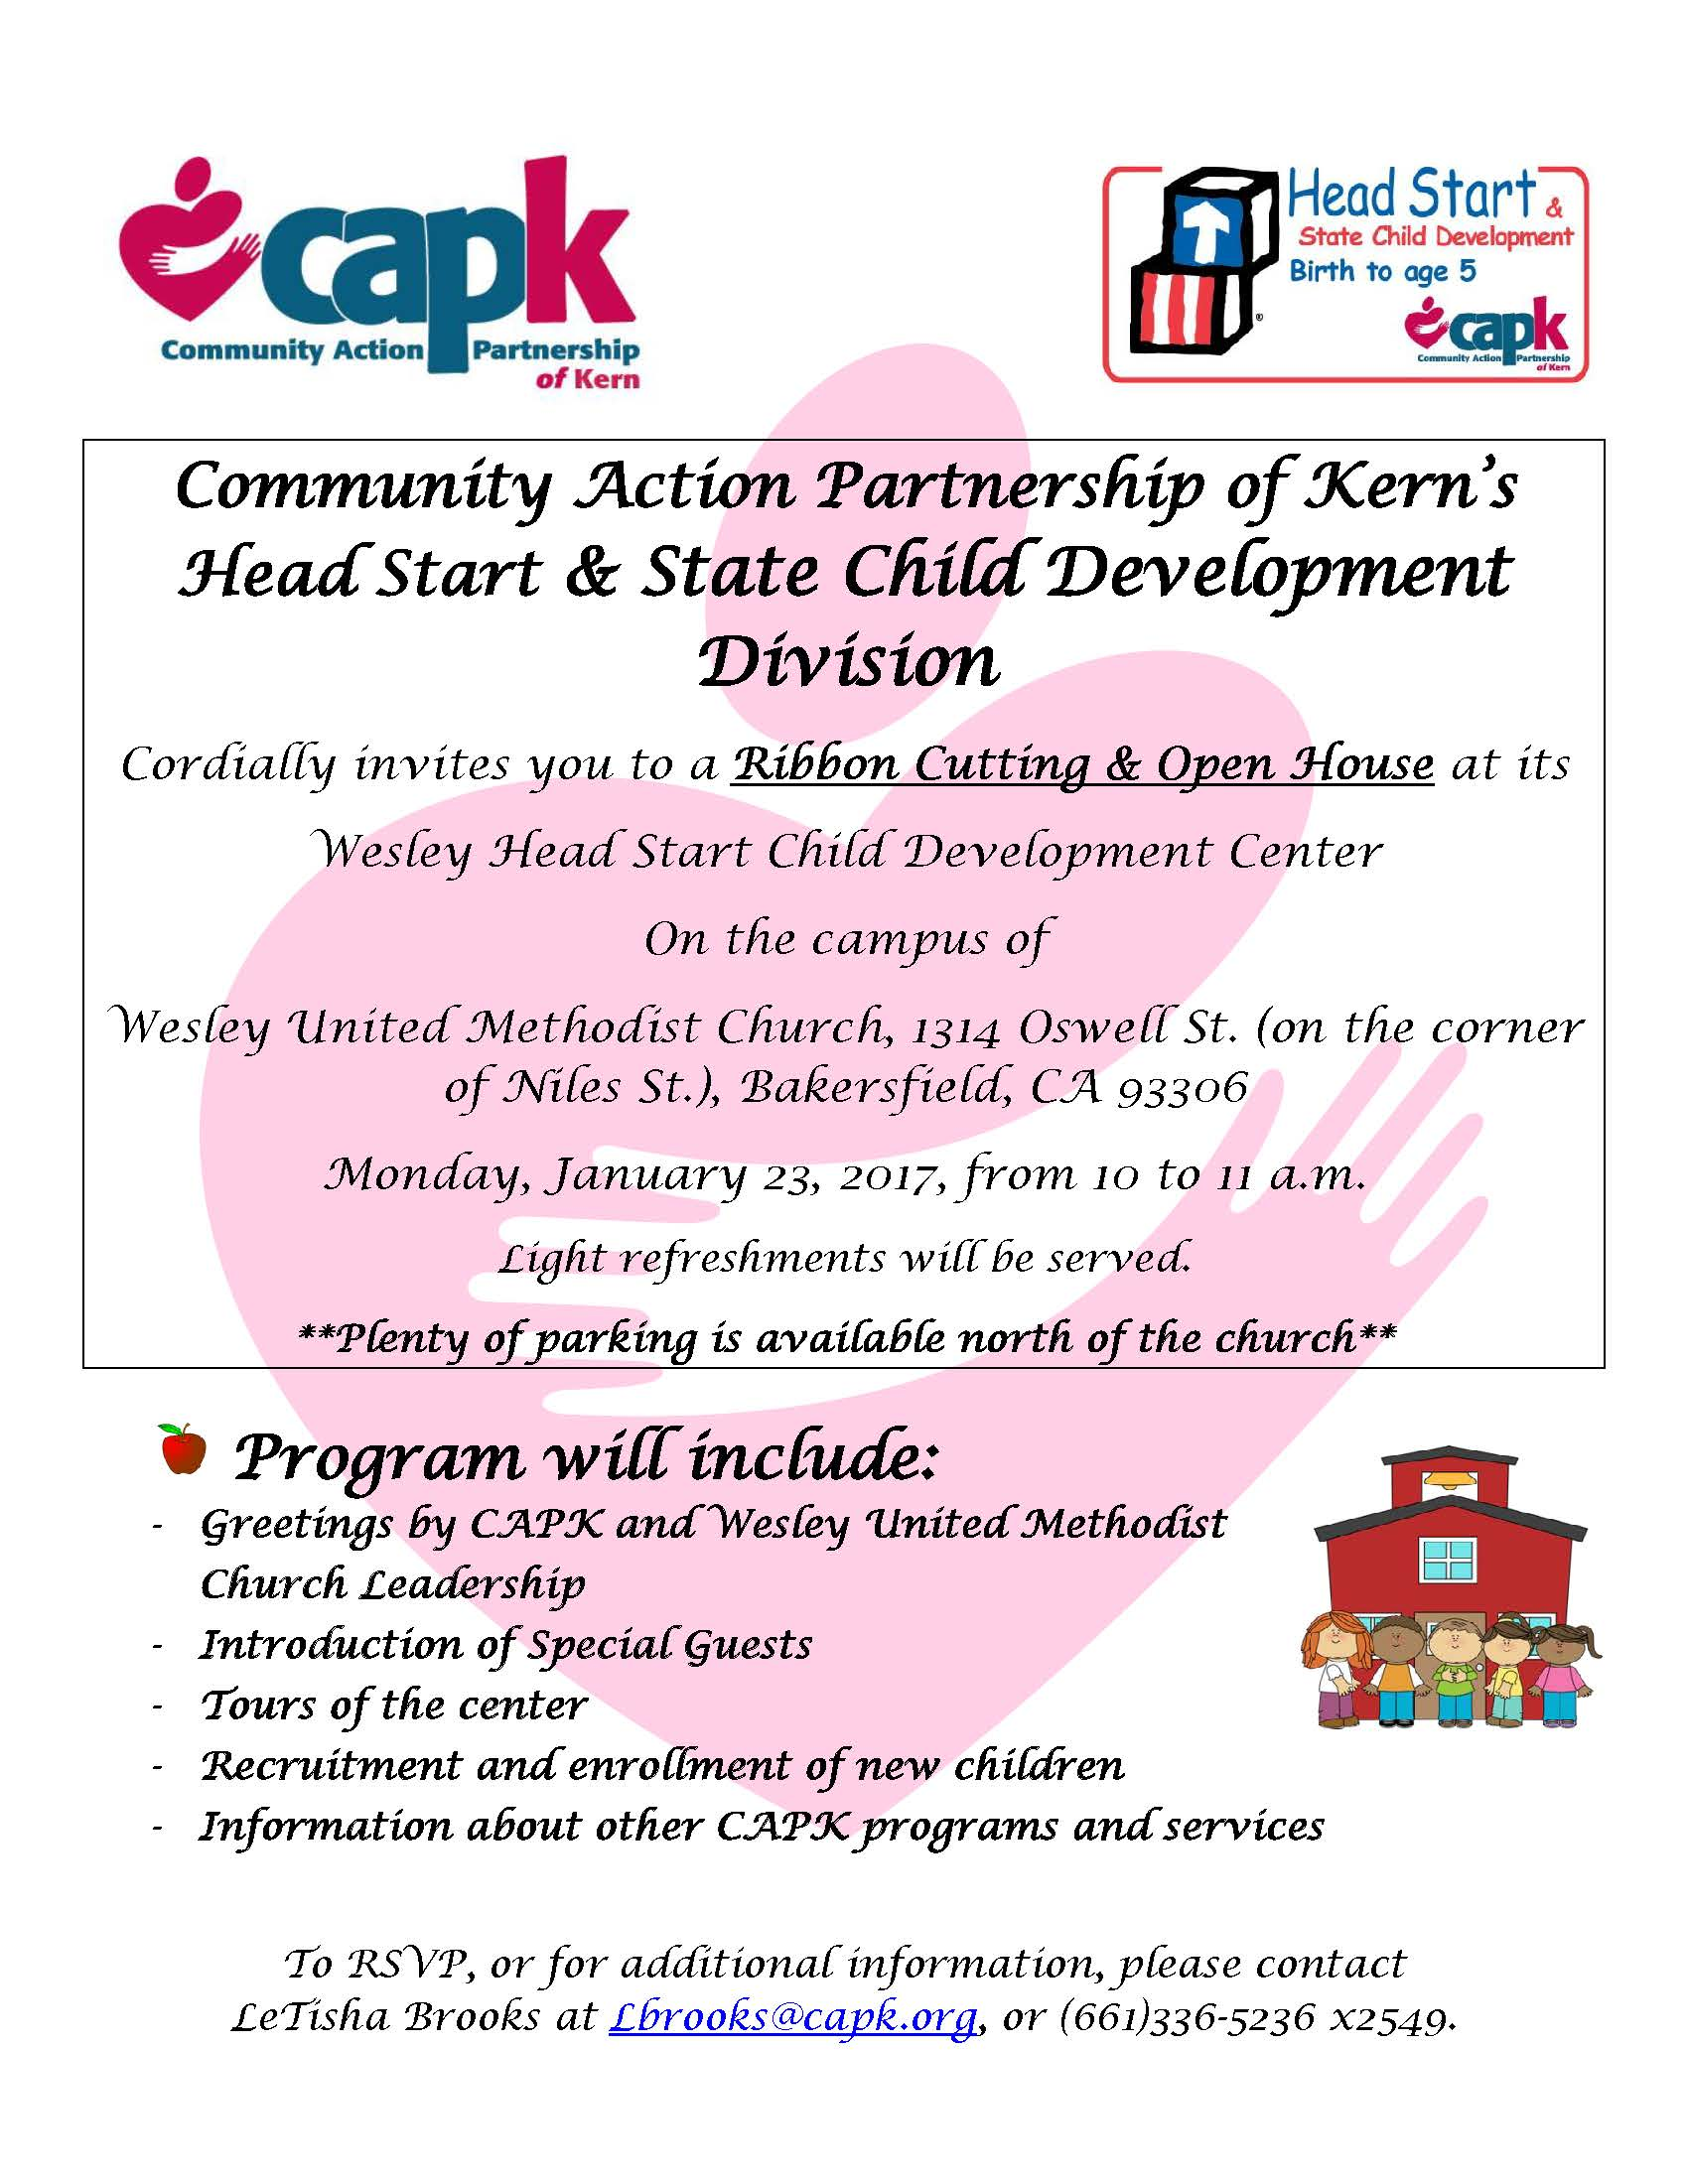 Wesley Head Start Ribbon Cutting Capk